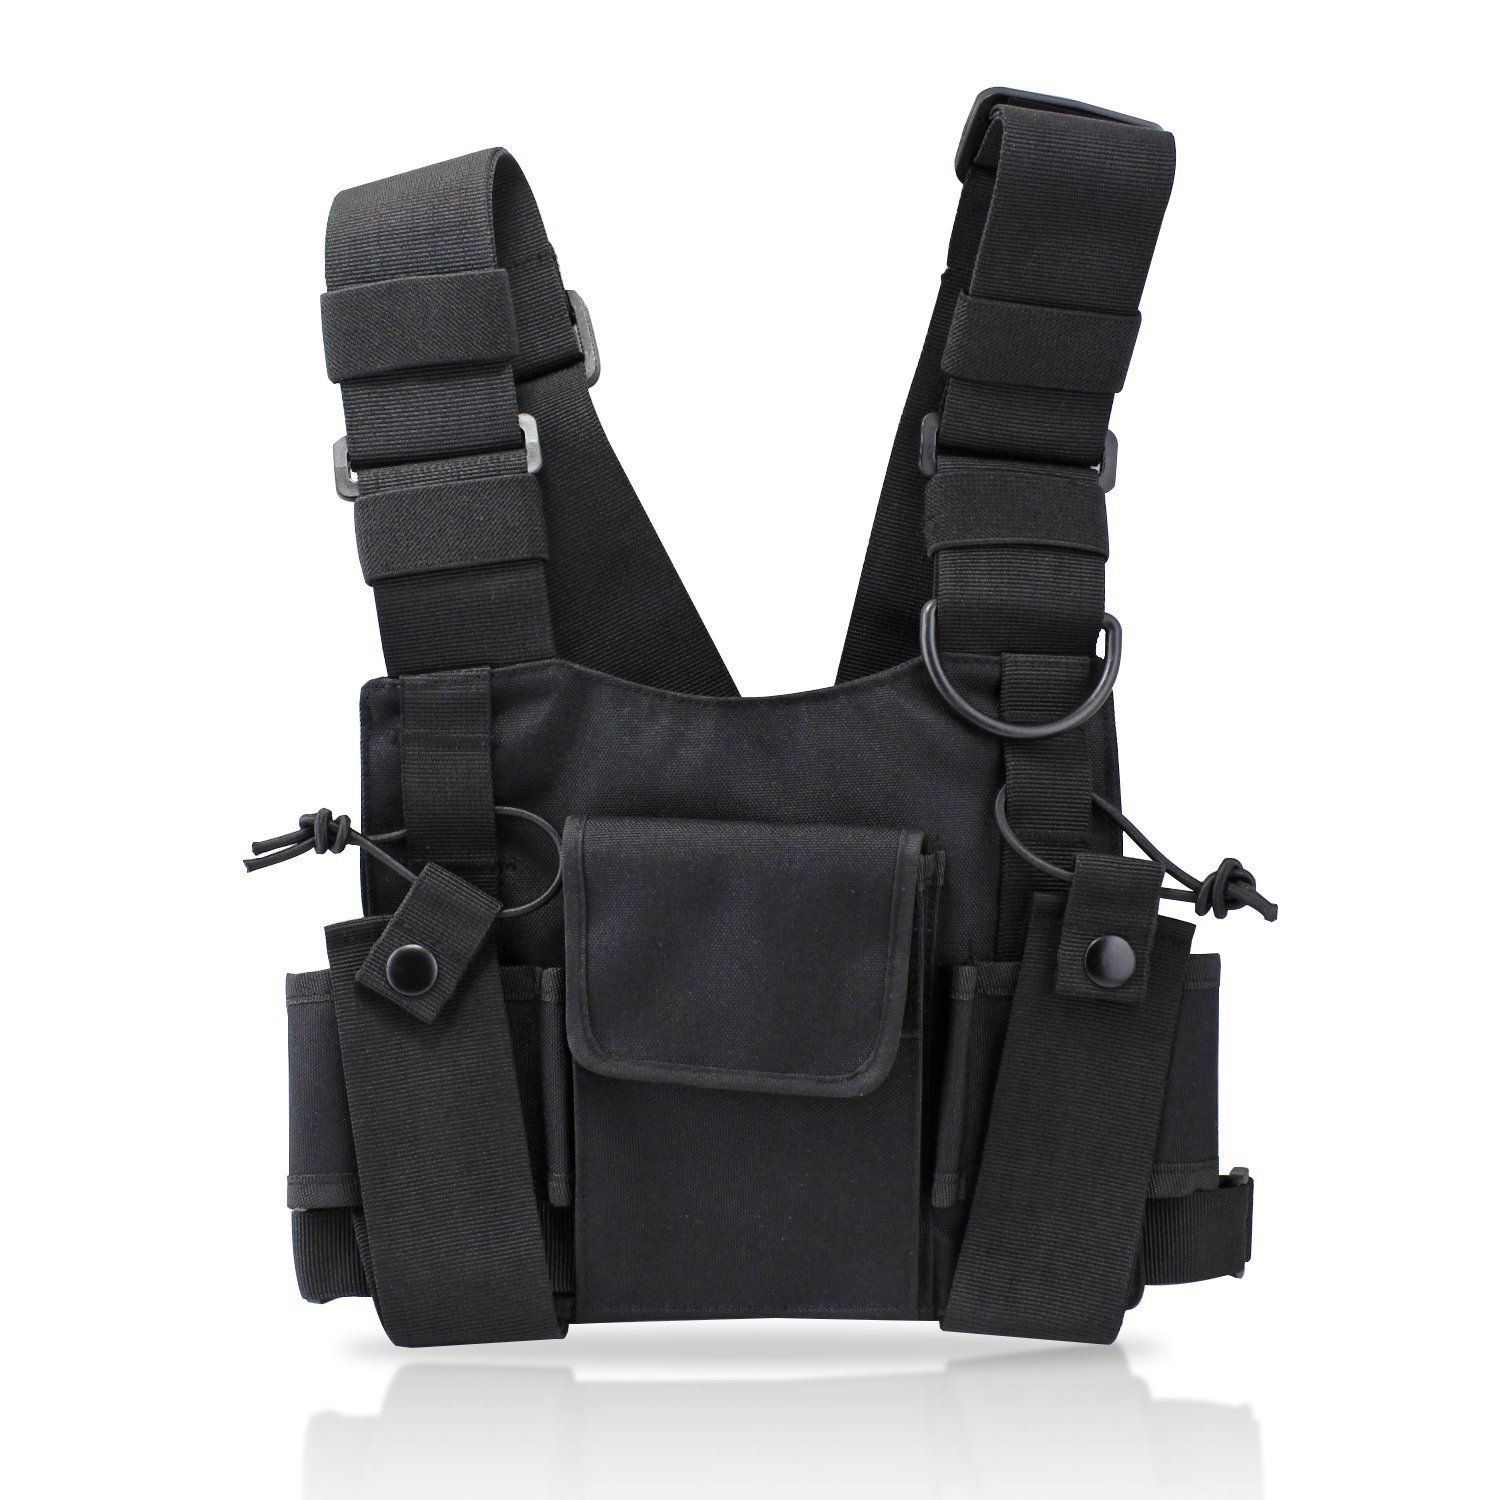 2019 New Hip-hop Kanye West Street Ins Hot Style Chest Rig Military Tactical Chest Bag Functional Package Prechest Bag Vest Bag Men's Bags